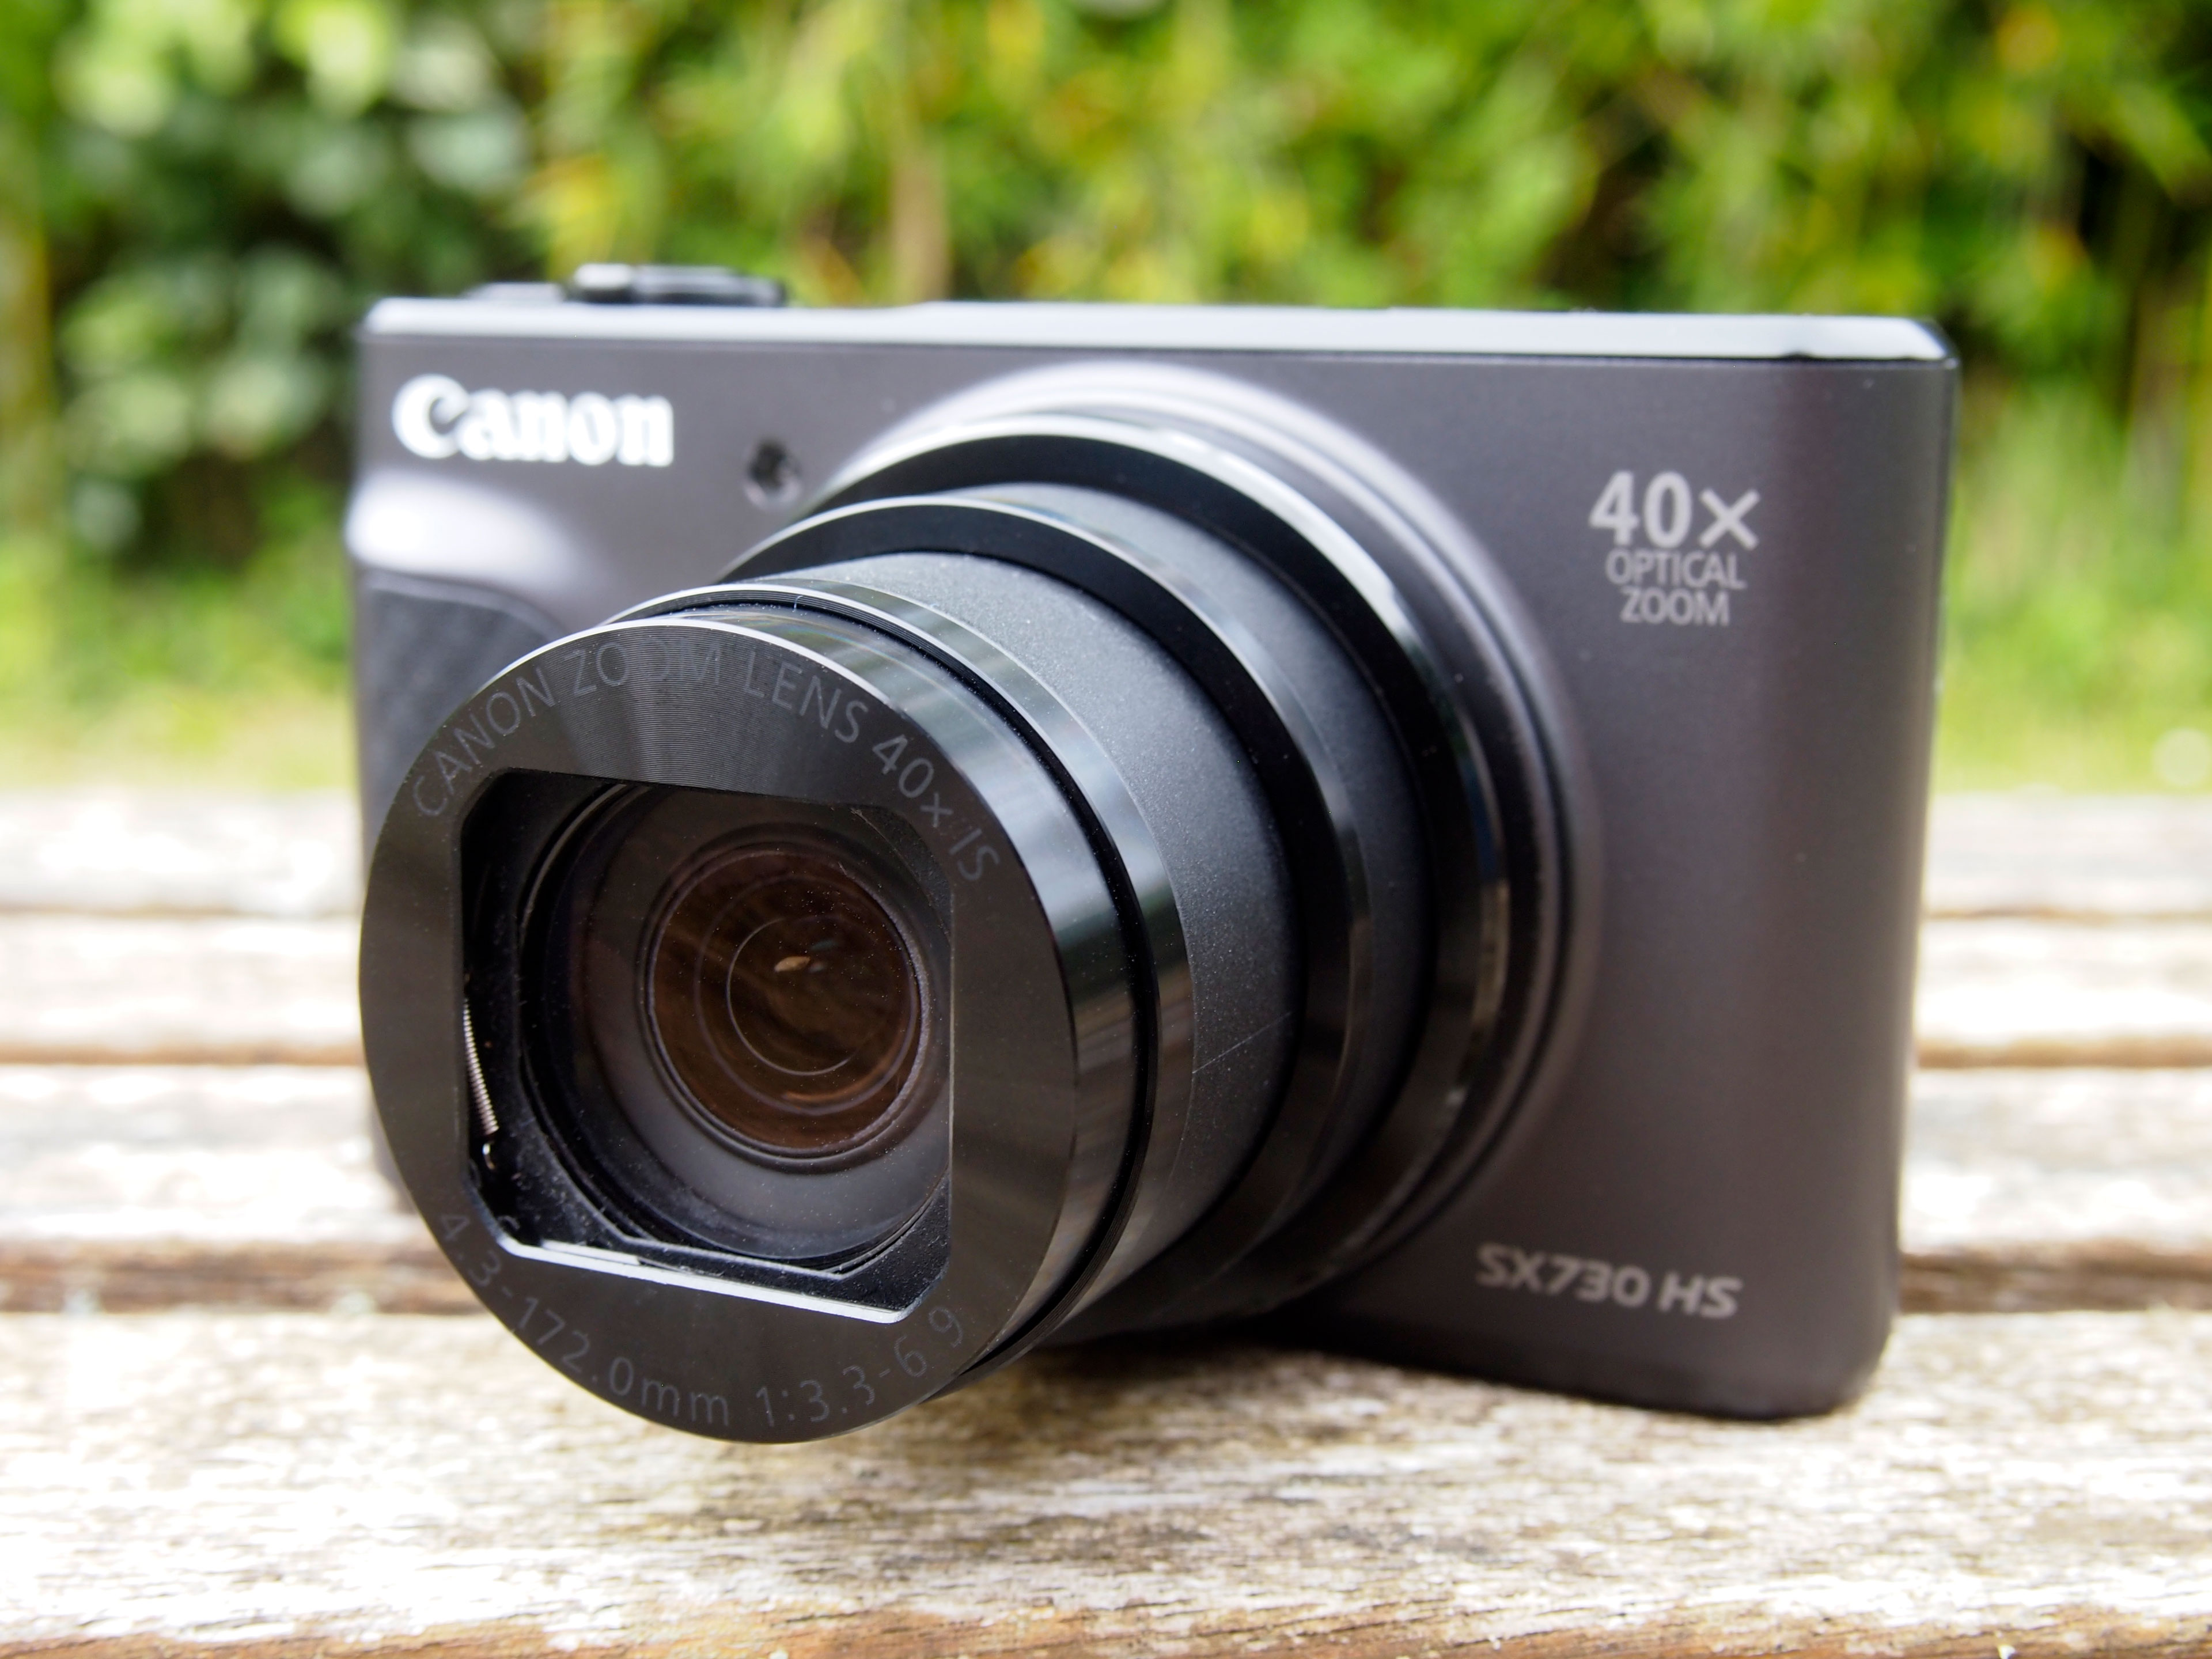 Best Point and Shoot camera - | Cameralabs